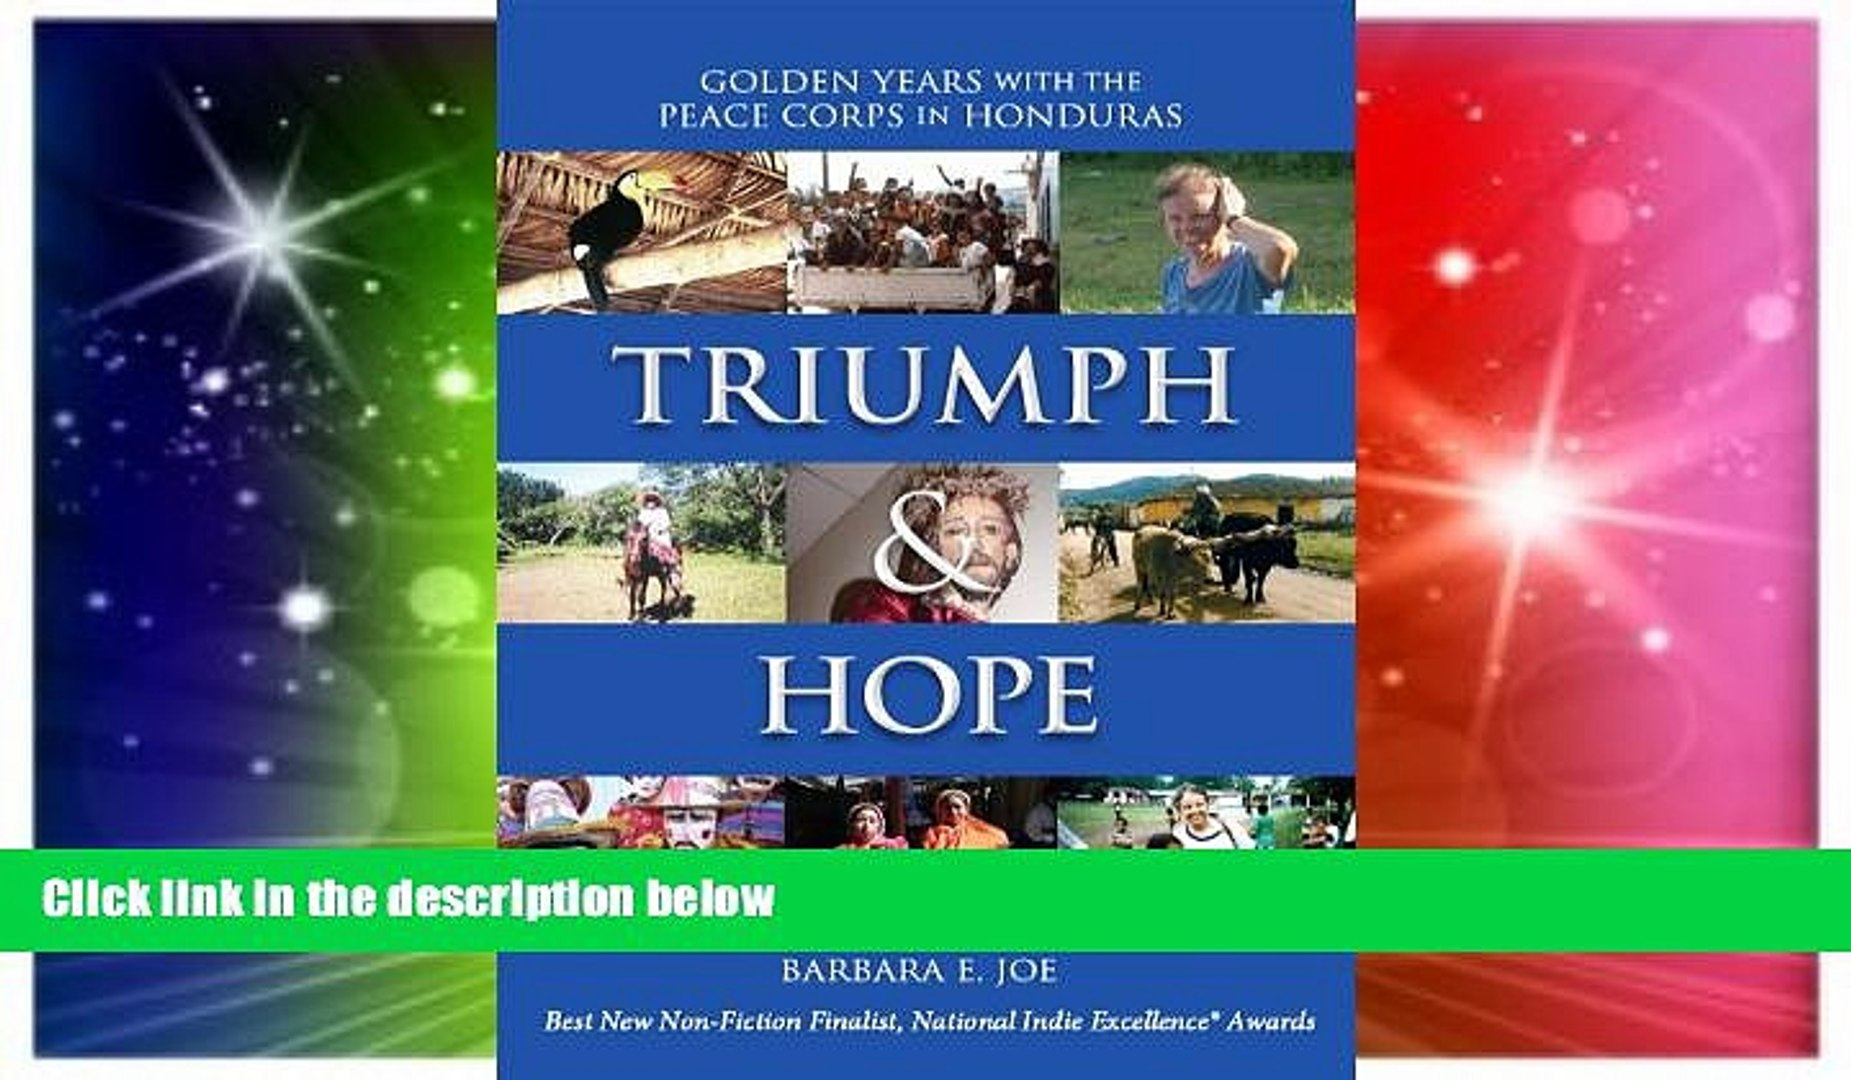 Triumph & Hope: Golden Years with the Peace Corps in Honduras by Barbara E. Joe